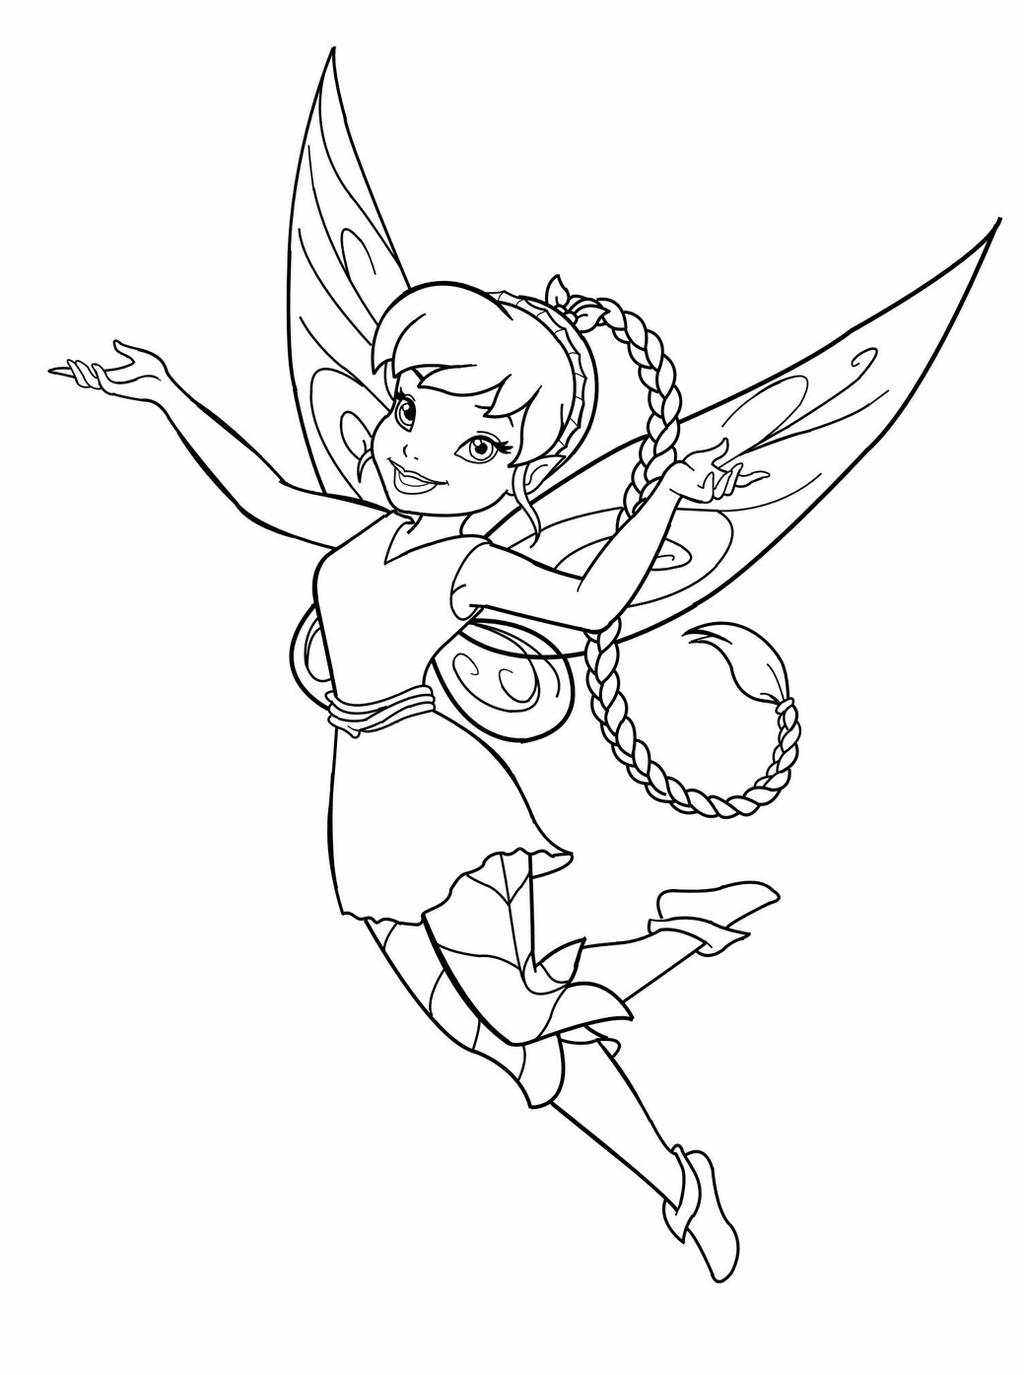 fawn fairy coloring pages free printable disney fairies fawn coloring sheet coloring fawn fairy pages